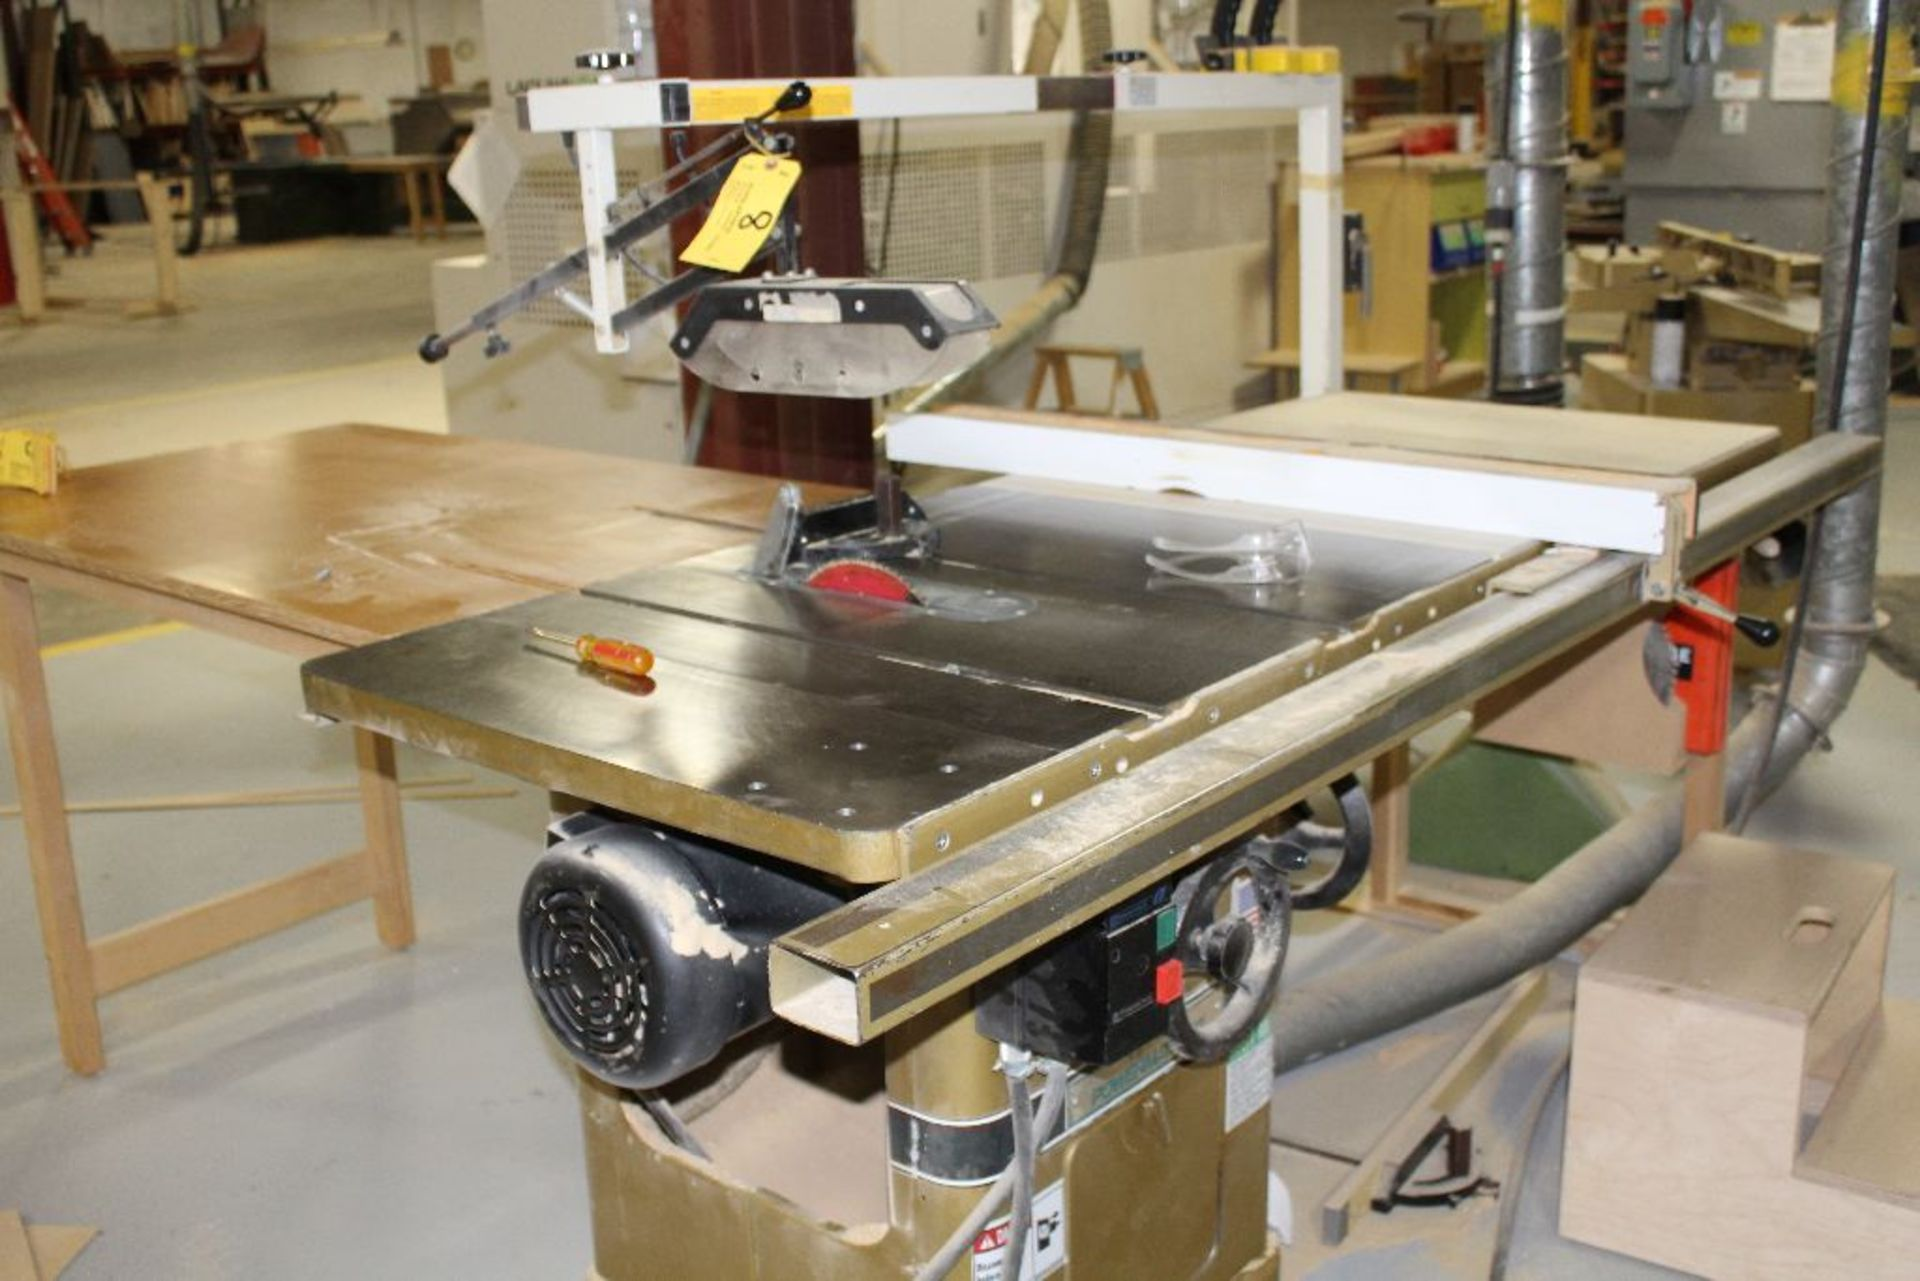 Lot 008 - Powermatic tablesaw model 66, w/blade guard system, 5 hp., voltage 230/460.